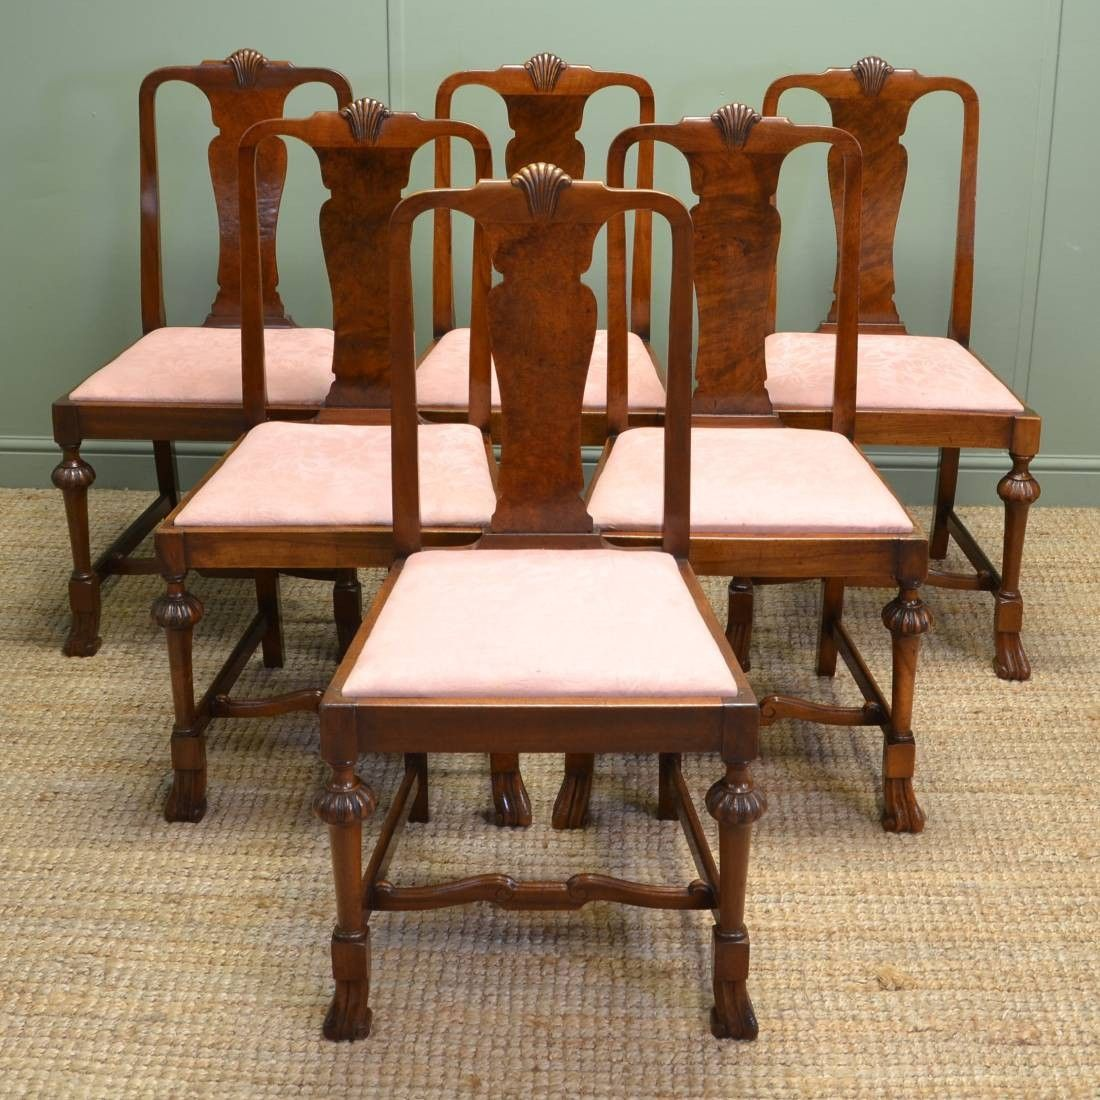 55+ Antique Walnut Dining Chairs - Modern Rustic Furniture Check more at  http:/ - 55+ Antique Walnut Dining Chairs - Modern Rustic Furniture Check